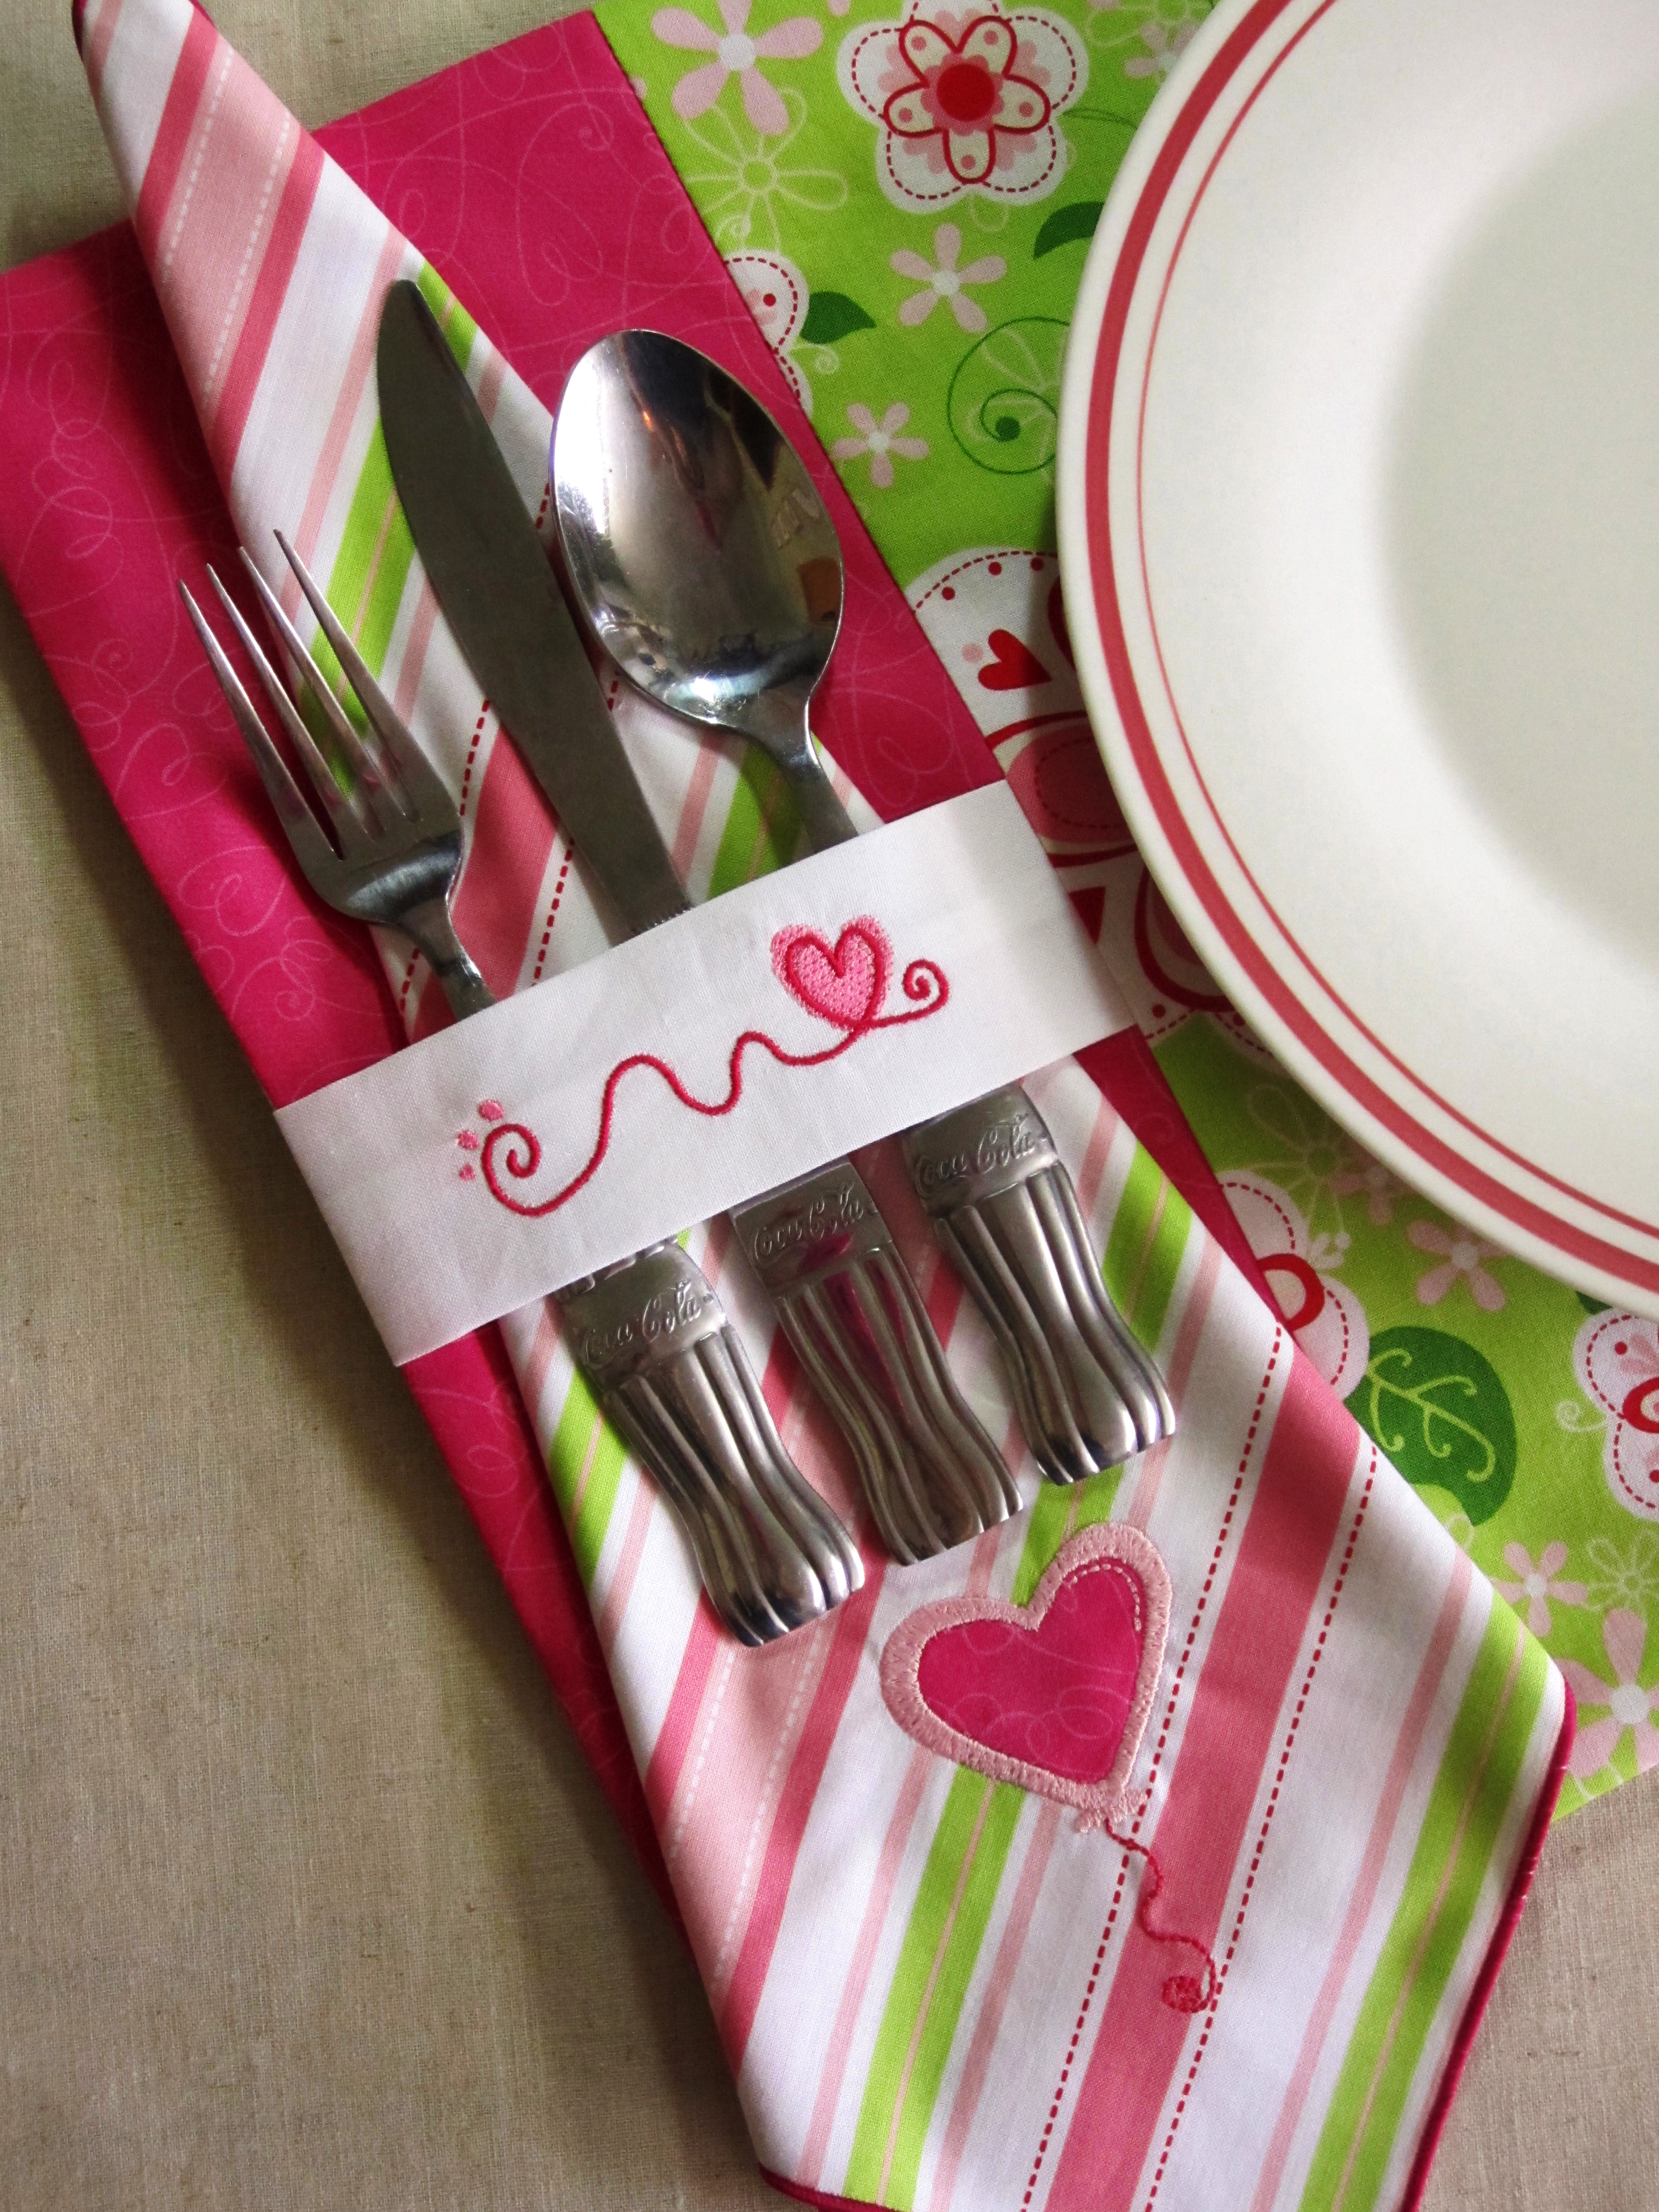 Placemats PLUS Sewing Pattern, 8 designs - photo#33